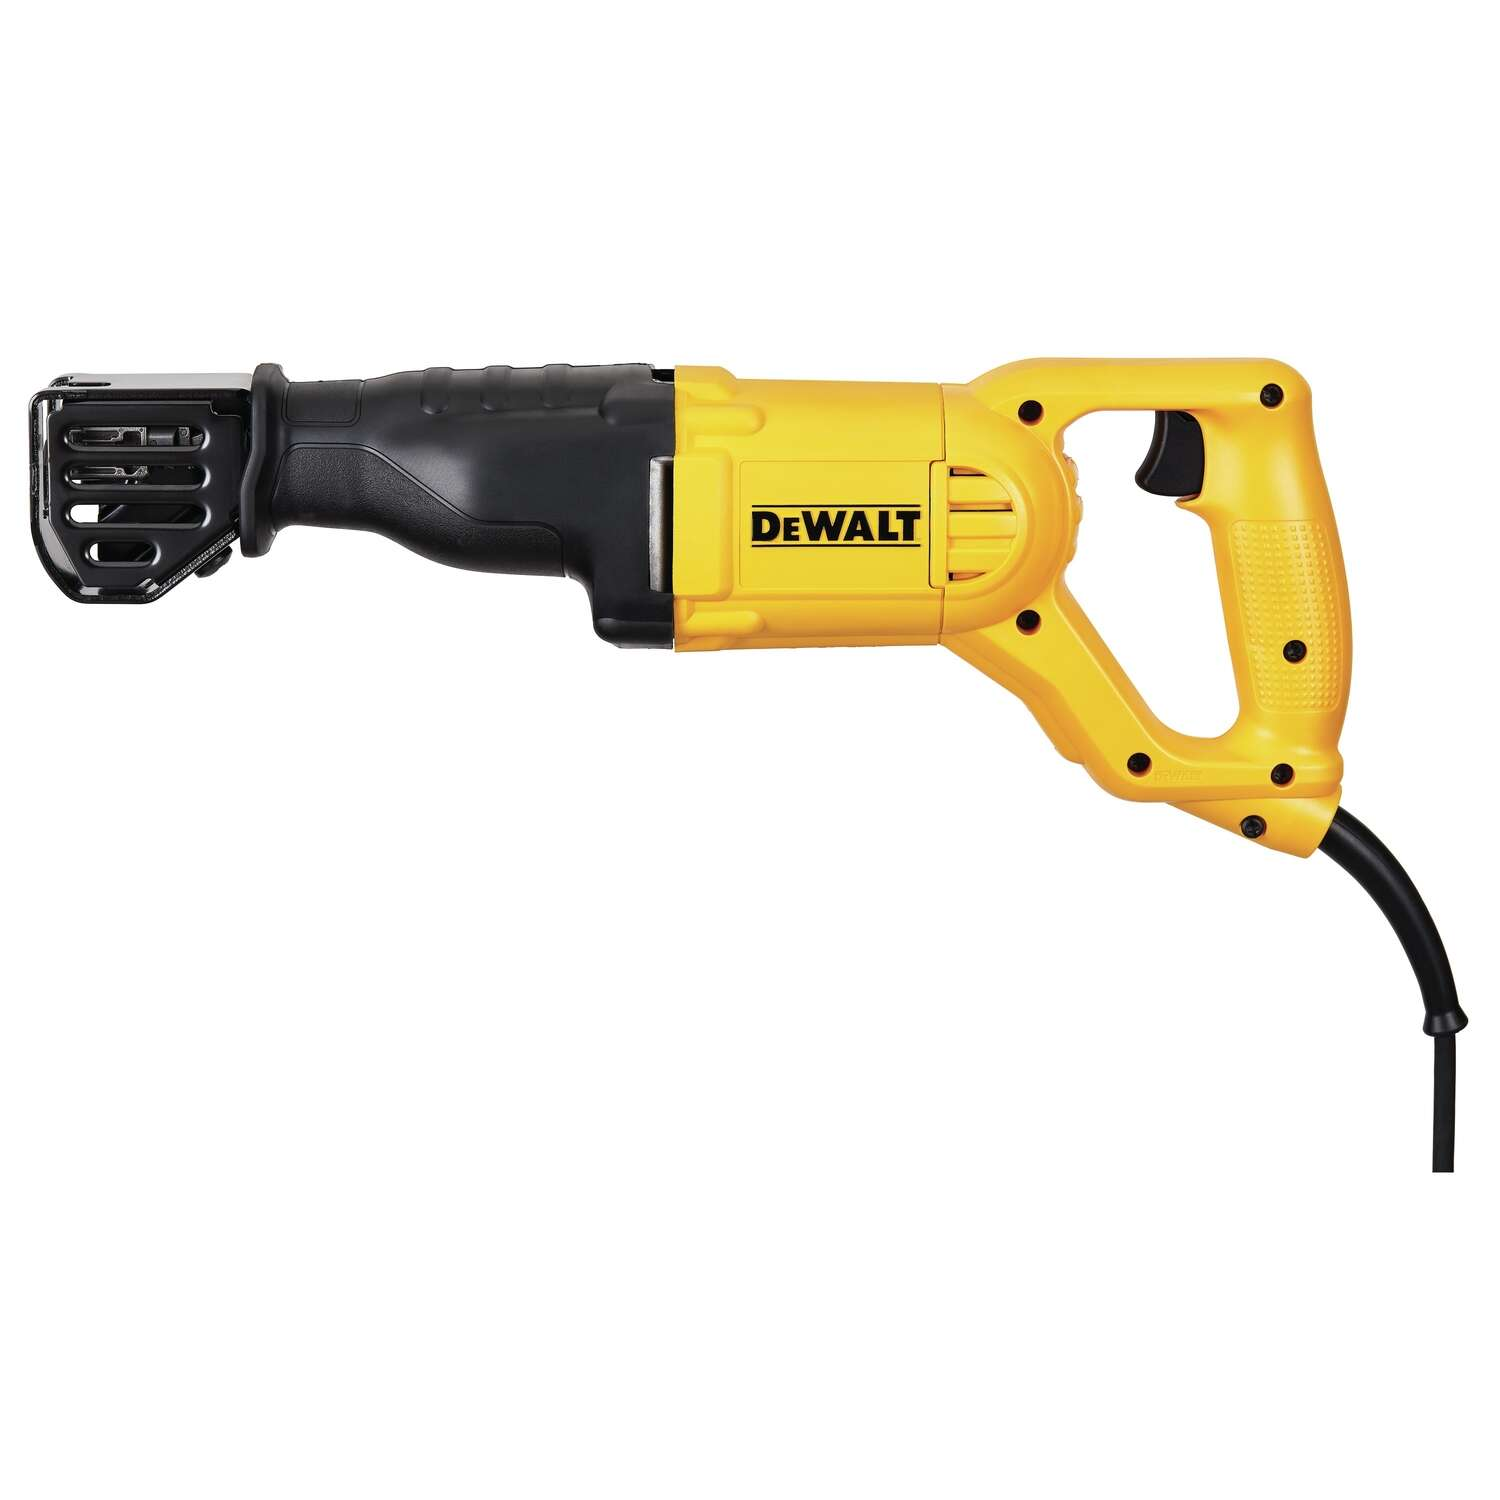 DeWalt 10 amps Corded Brushed Reciprocating Saw Tool Only